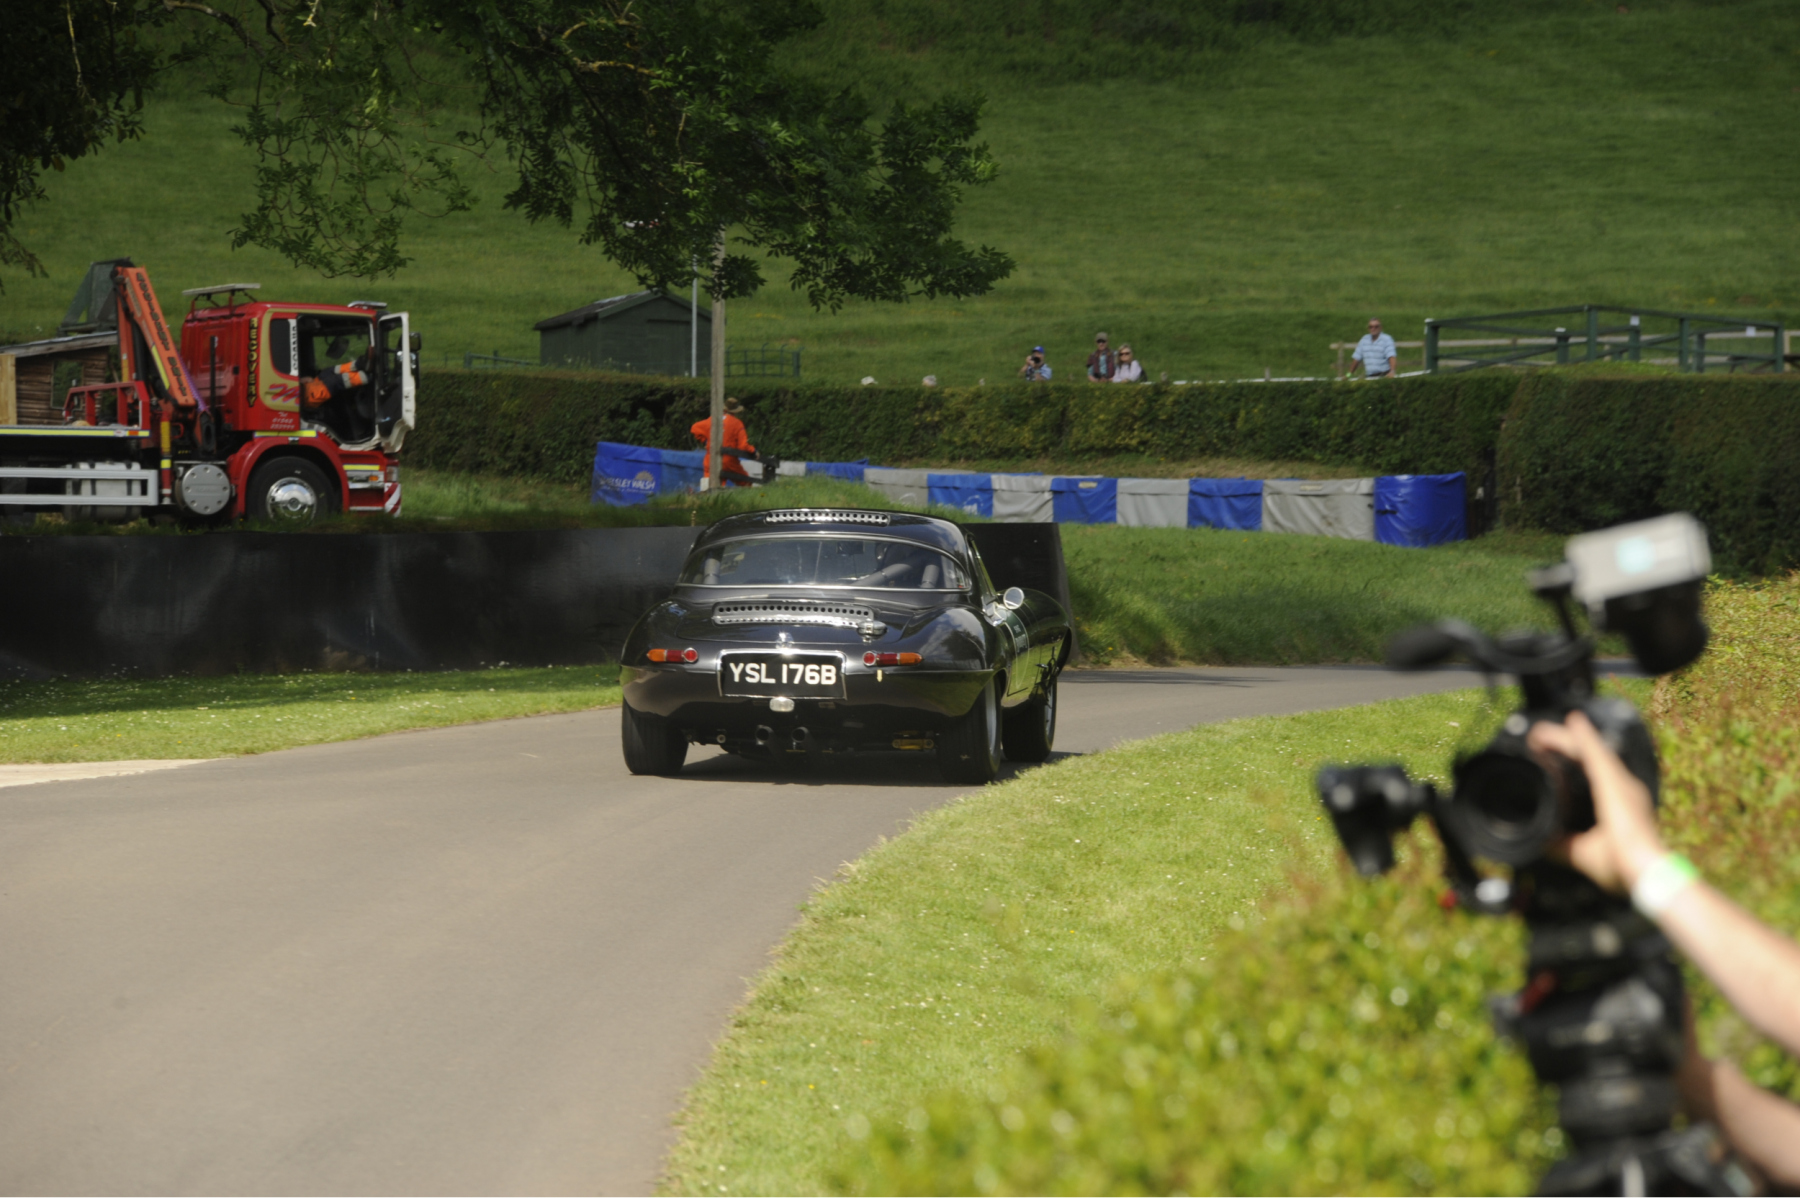 E-type-60-Saturday-photo-by-Abigail-Humphries-139